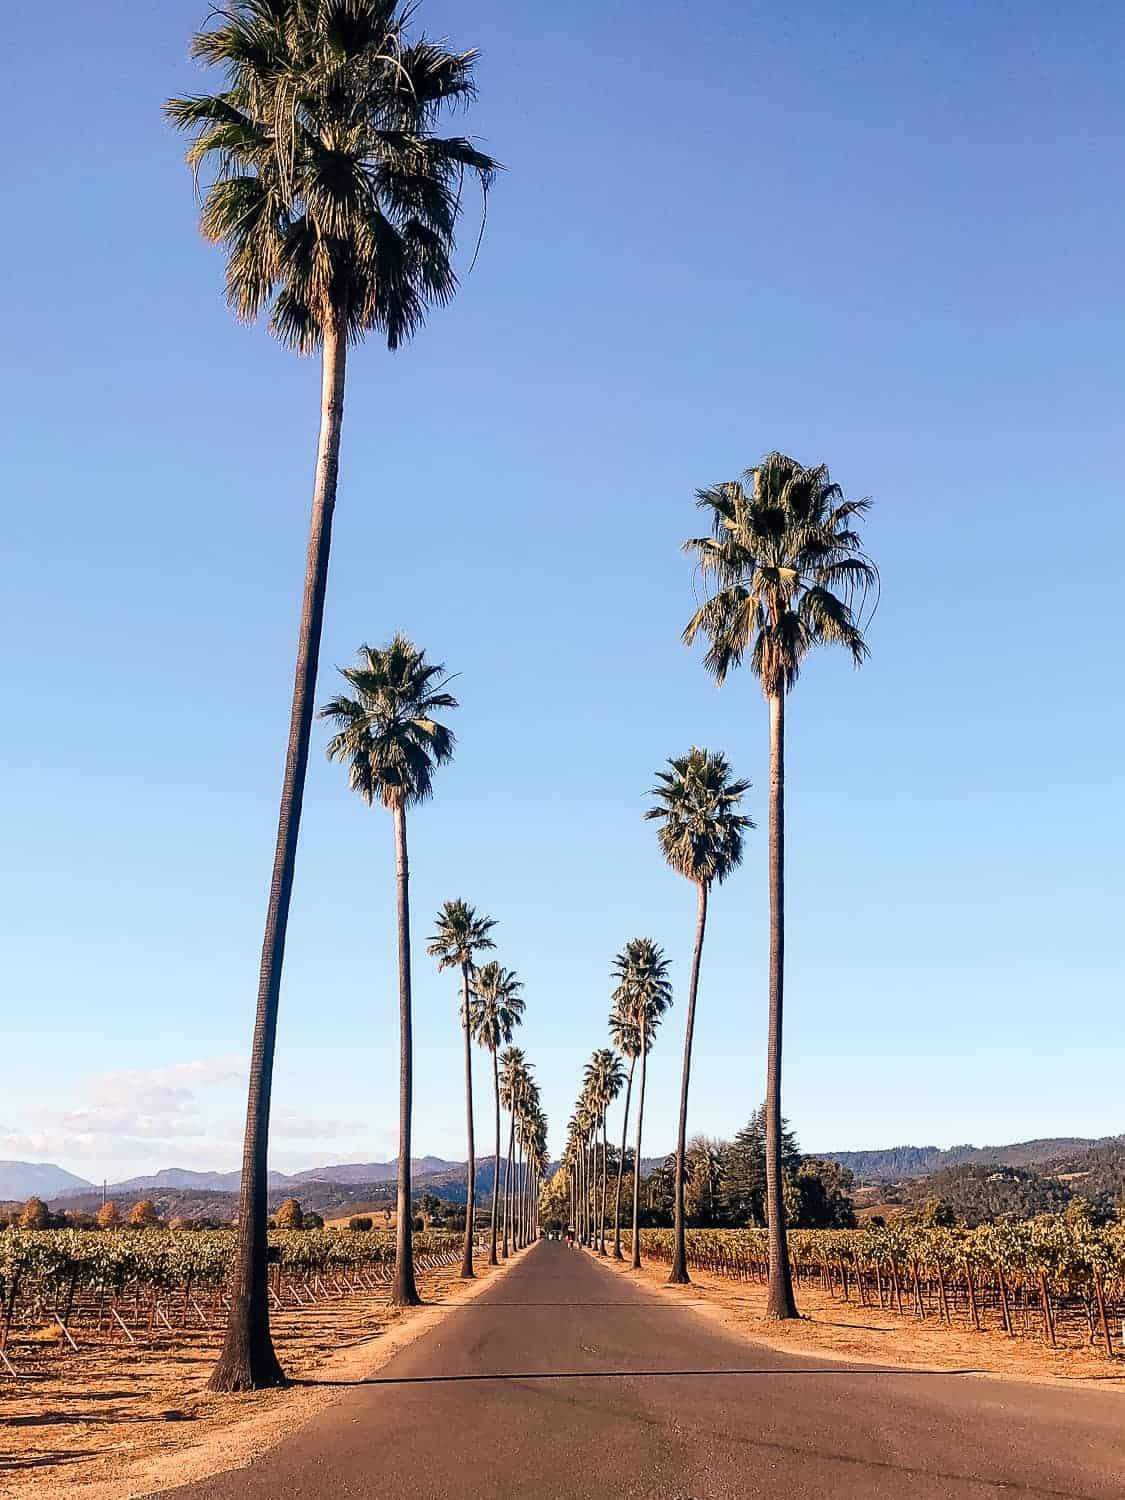 palm trees lining road in california